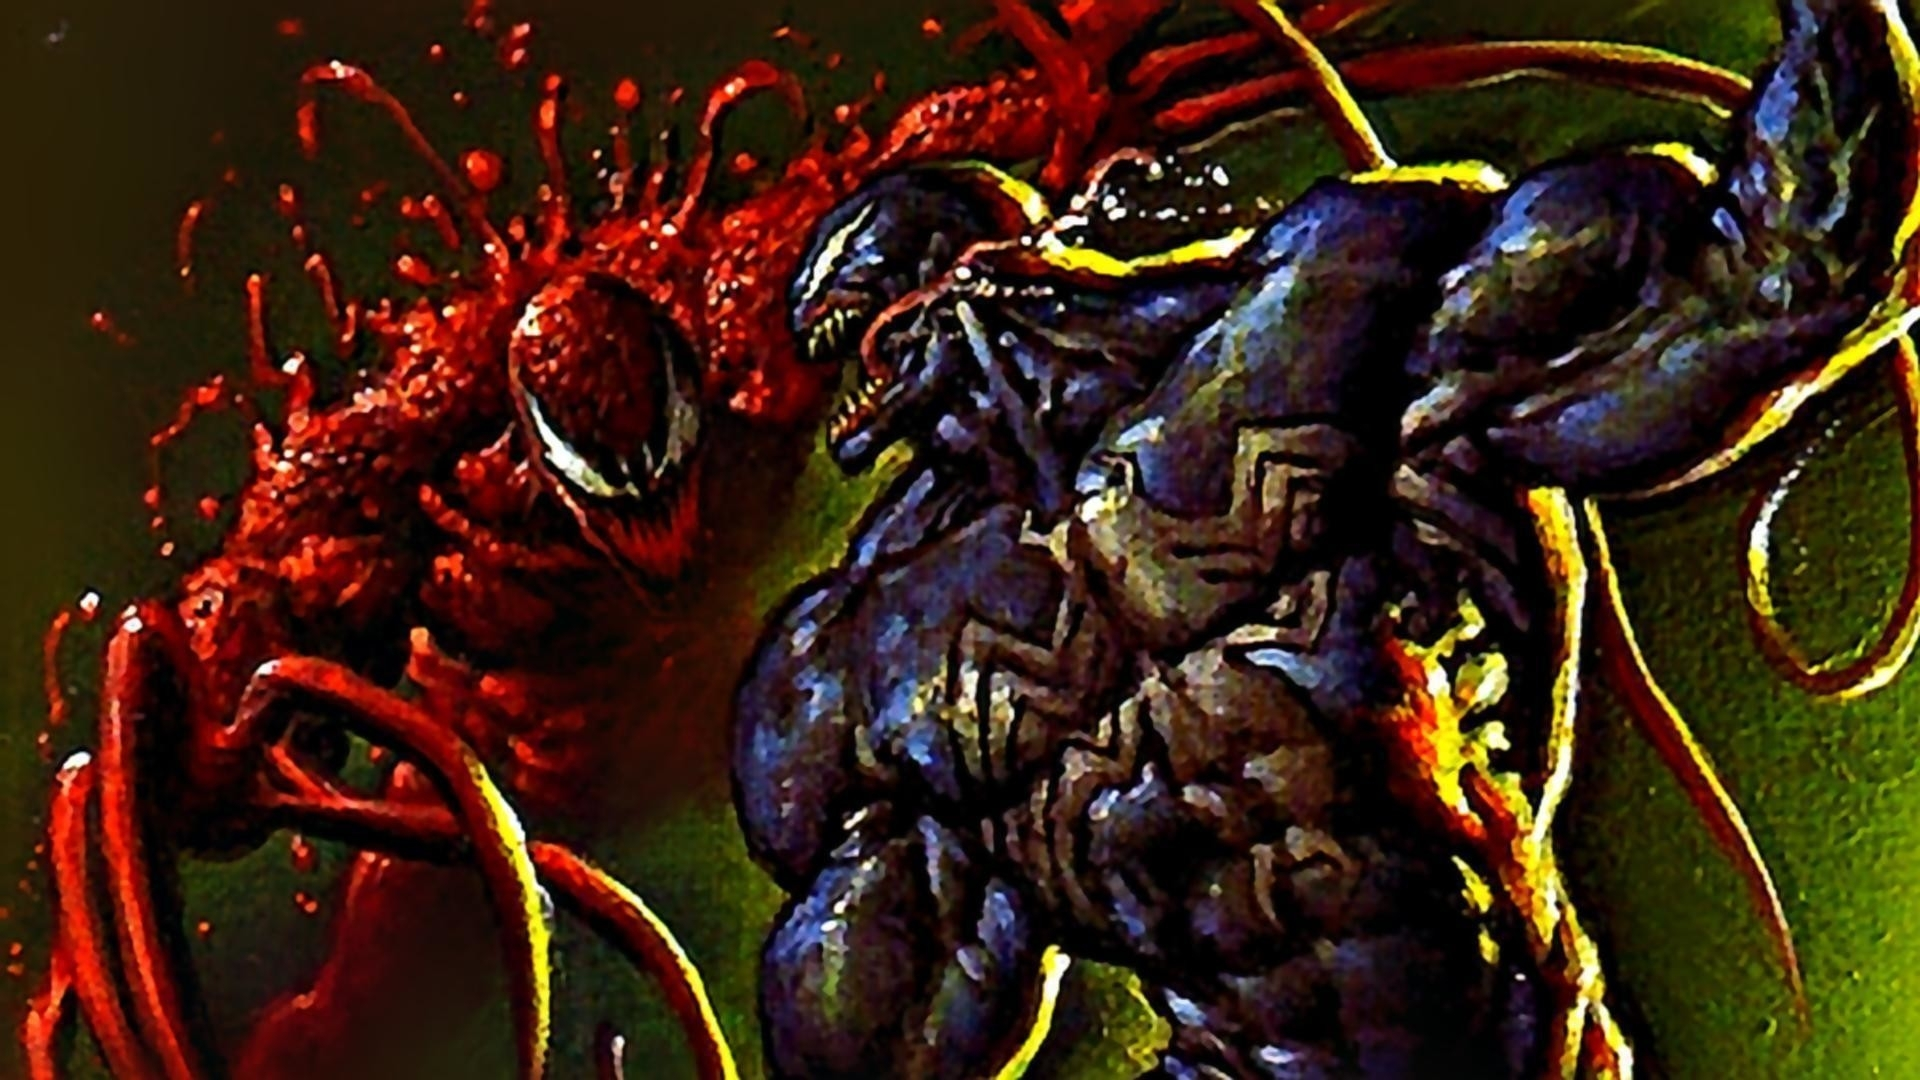 venom vs carnage wallpaper (70+ images)